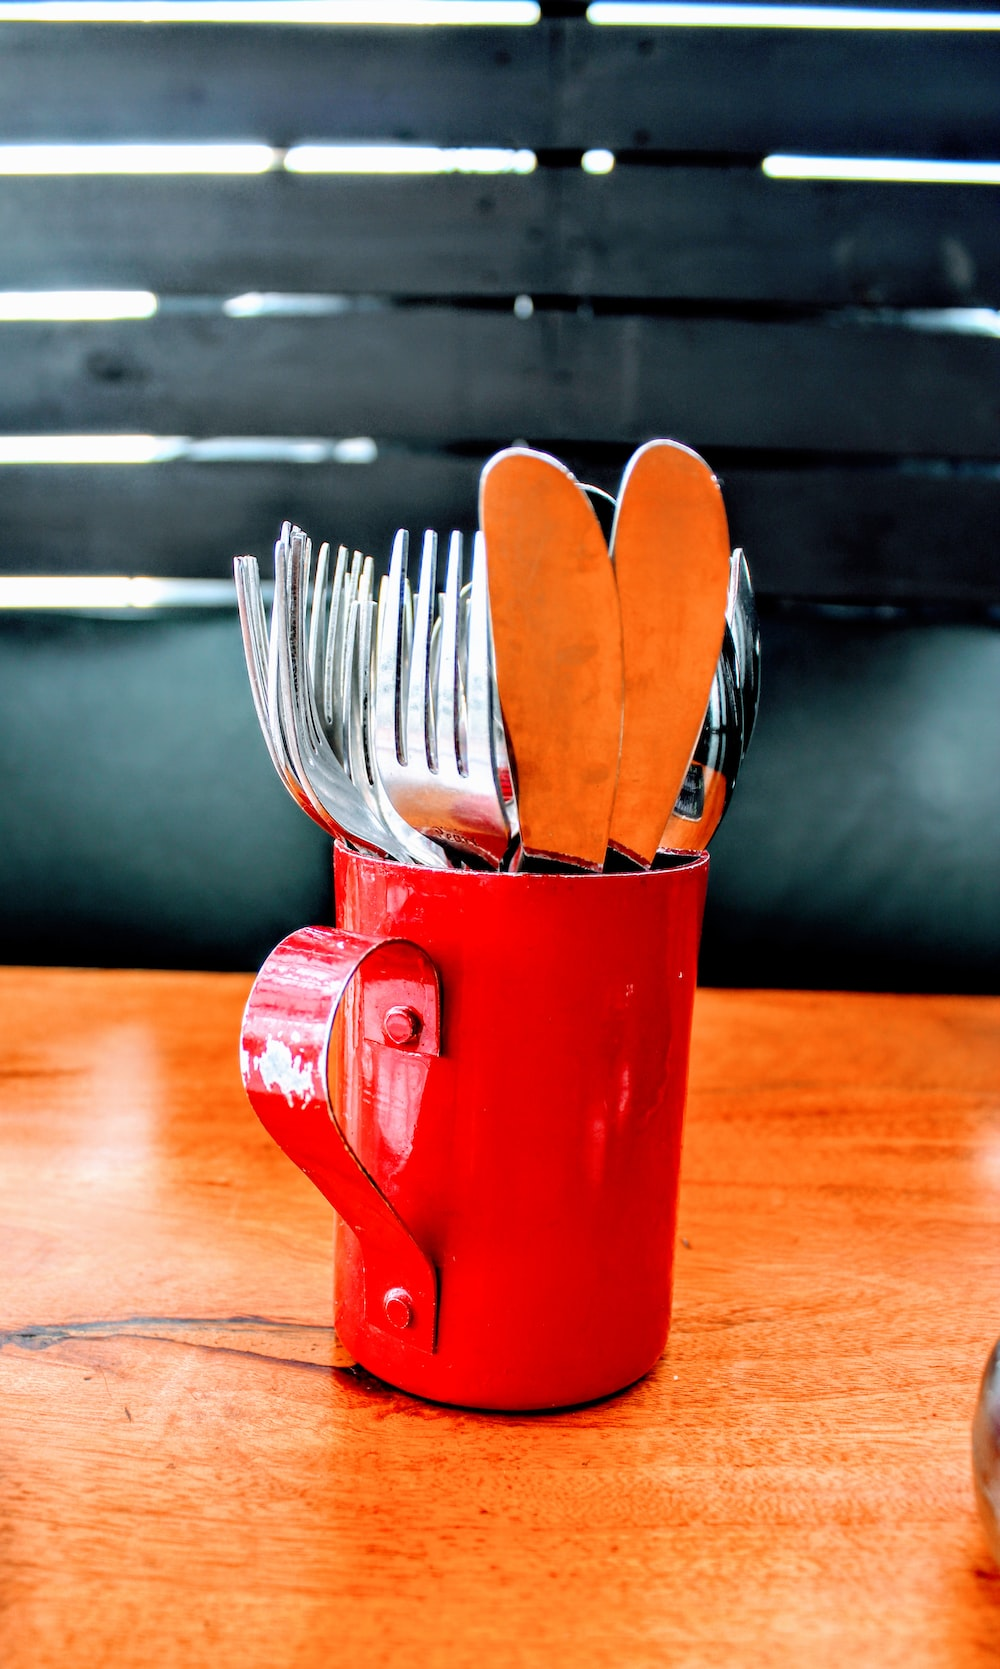 stainless steel fork and spoon in red ceramic mug